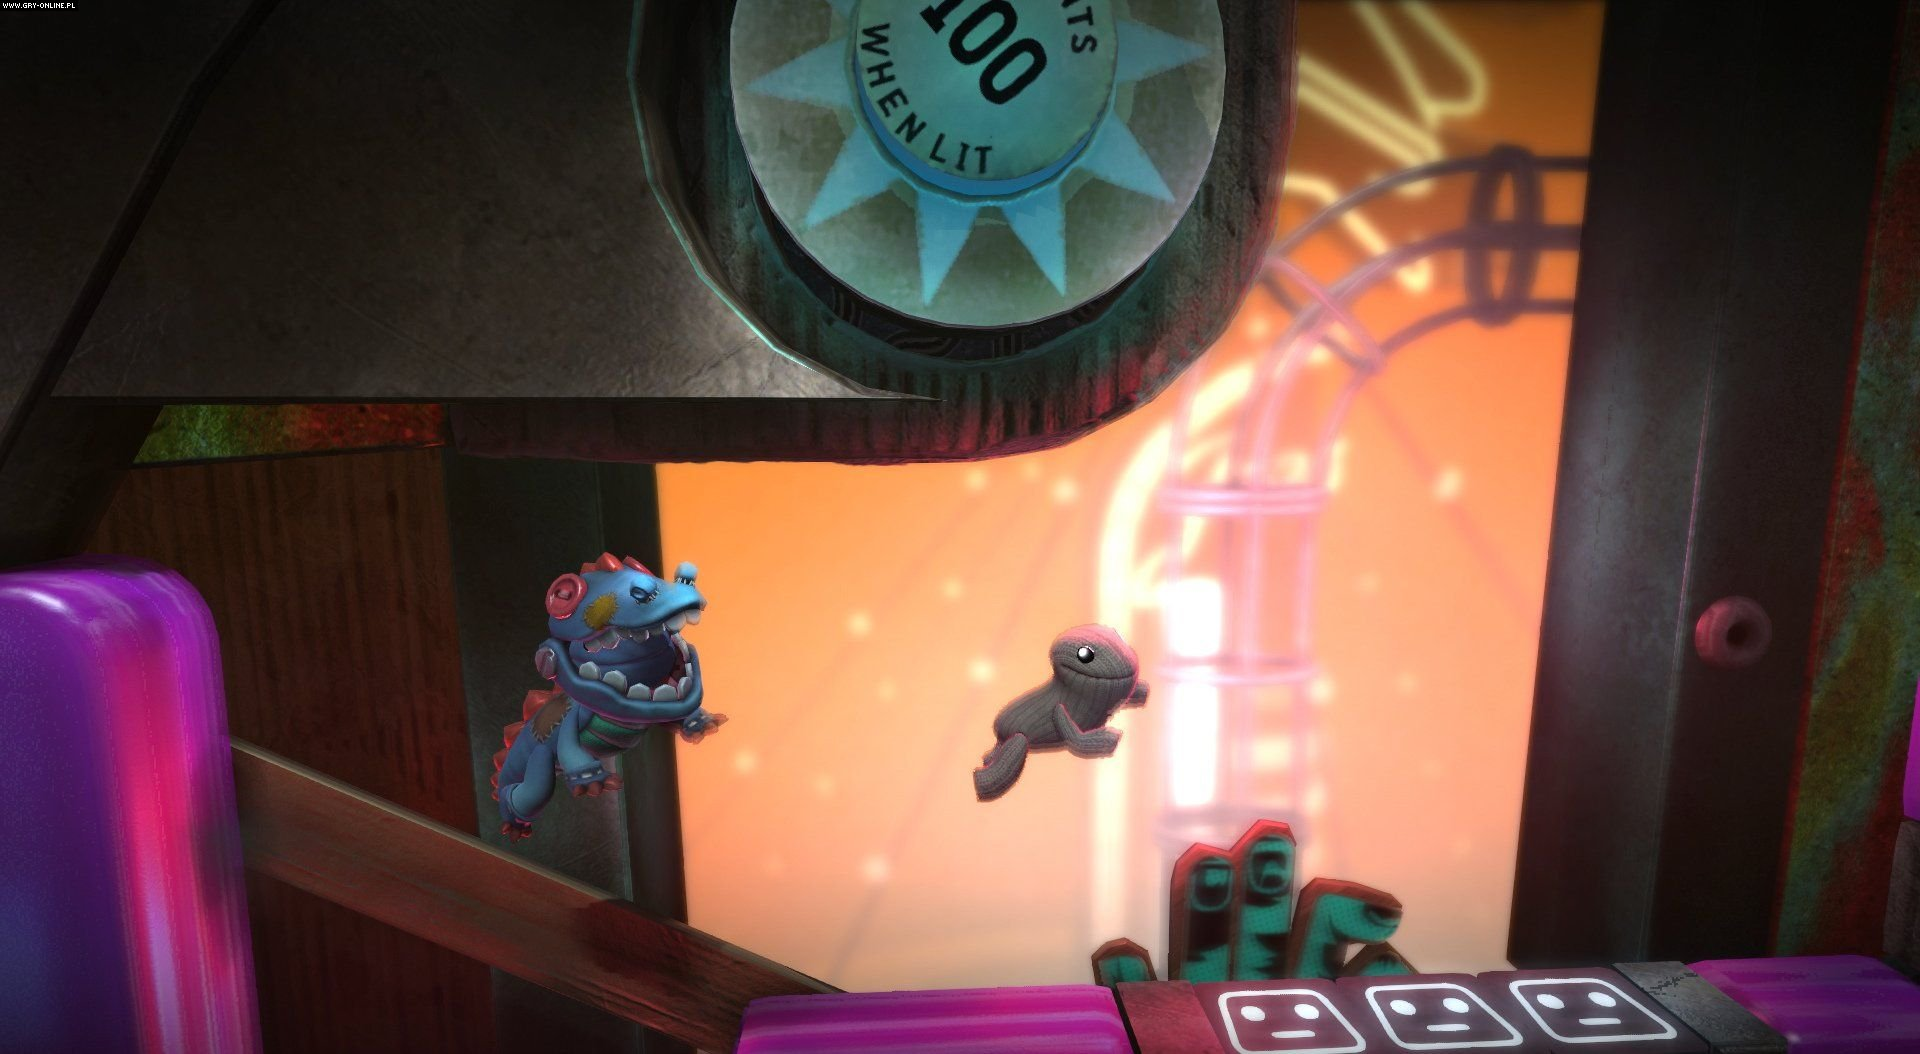 LittleBigPlanet 3 PS3, PS4 Gry Screen 7/37, Sumo Digital, Sony Interactive Entertainment